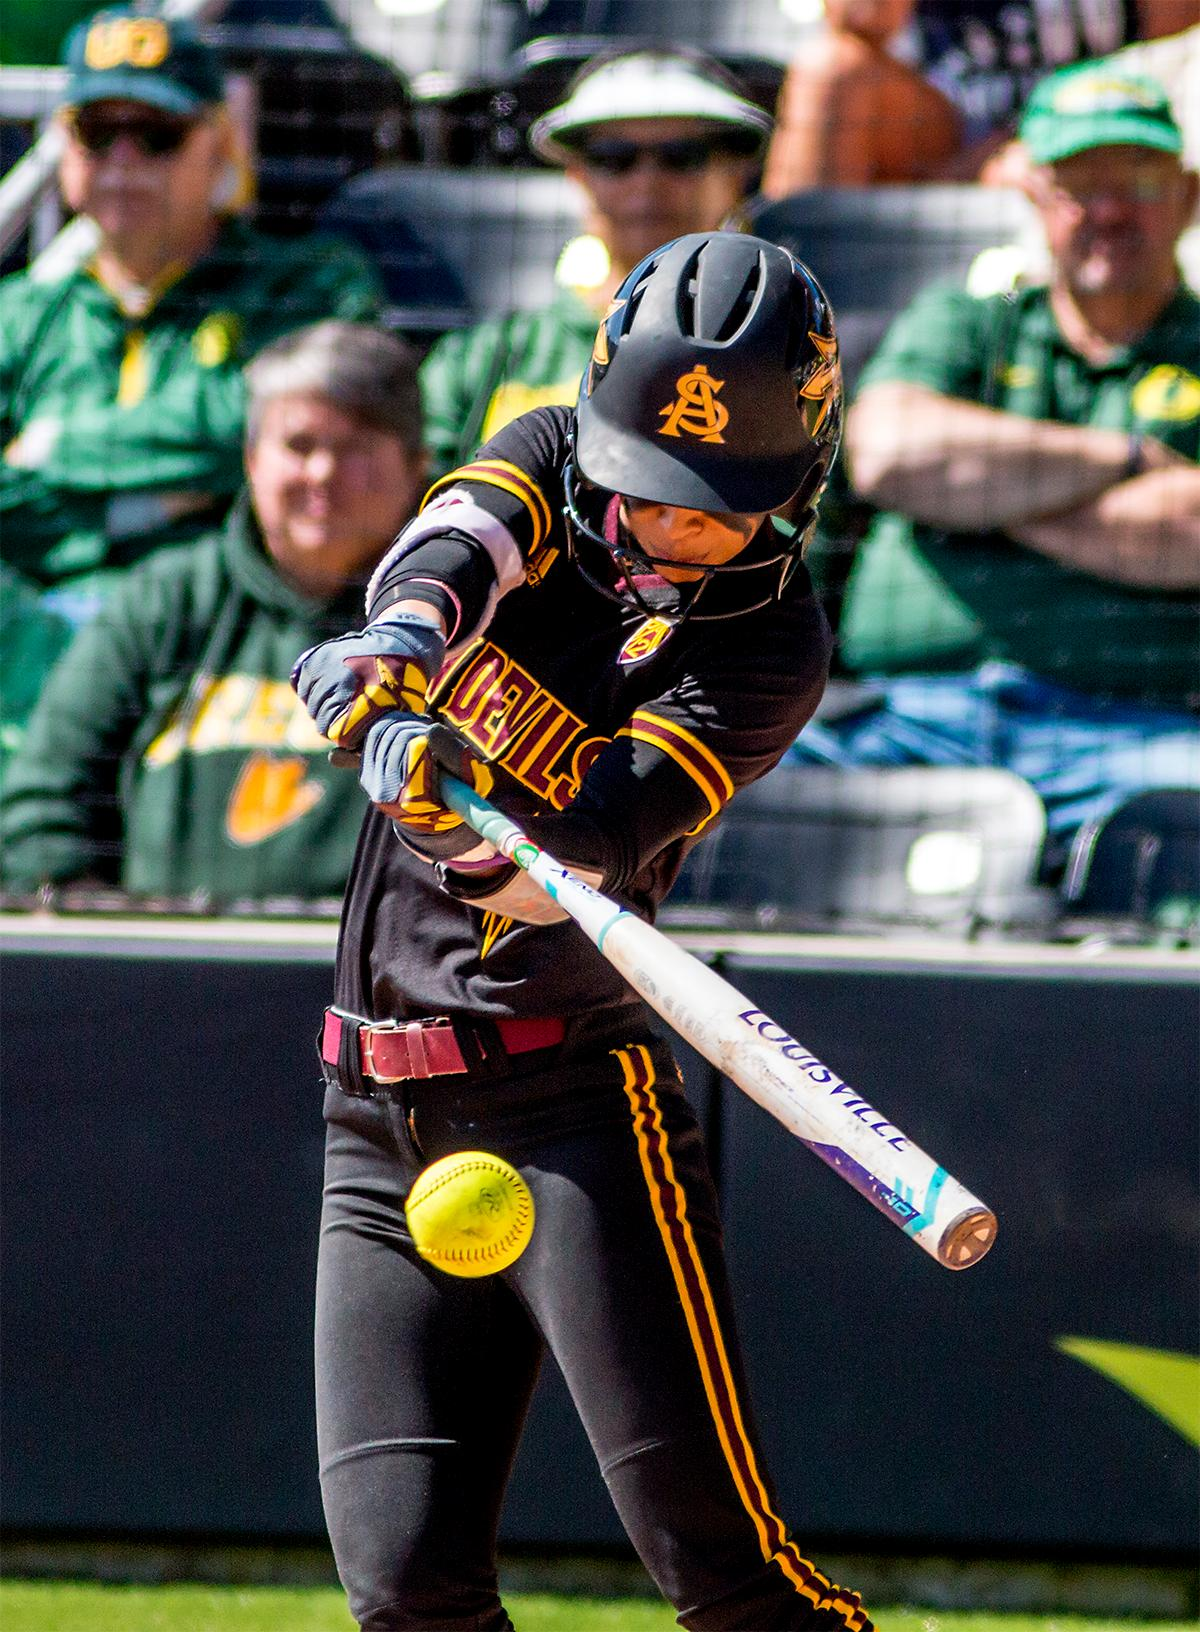 The Sun Devils' Taylor Becerra (#26) swings for the ball. The Oregon Ducks Softball team took their third win over the Arizona Sun Devils, 1-0, in the final game of the weekends series that saw the game go into an eighth inning before the Duck?s Mia Camuso (#7) scored a hit allowing teammate Haley Cruse (#26) to run into home plate for a point. The Ducks are now 33-0 this season and will next play a double header against Portland State on Tuesday, April 4 at Jane Sanders Stadium. Photo by August Frank, Oregon News Lab